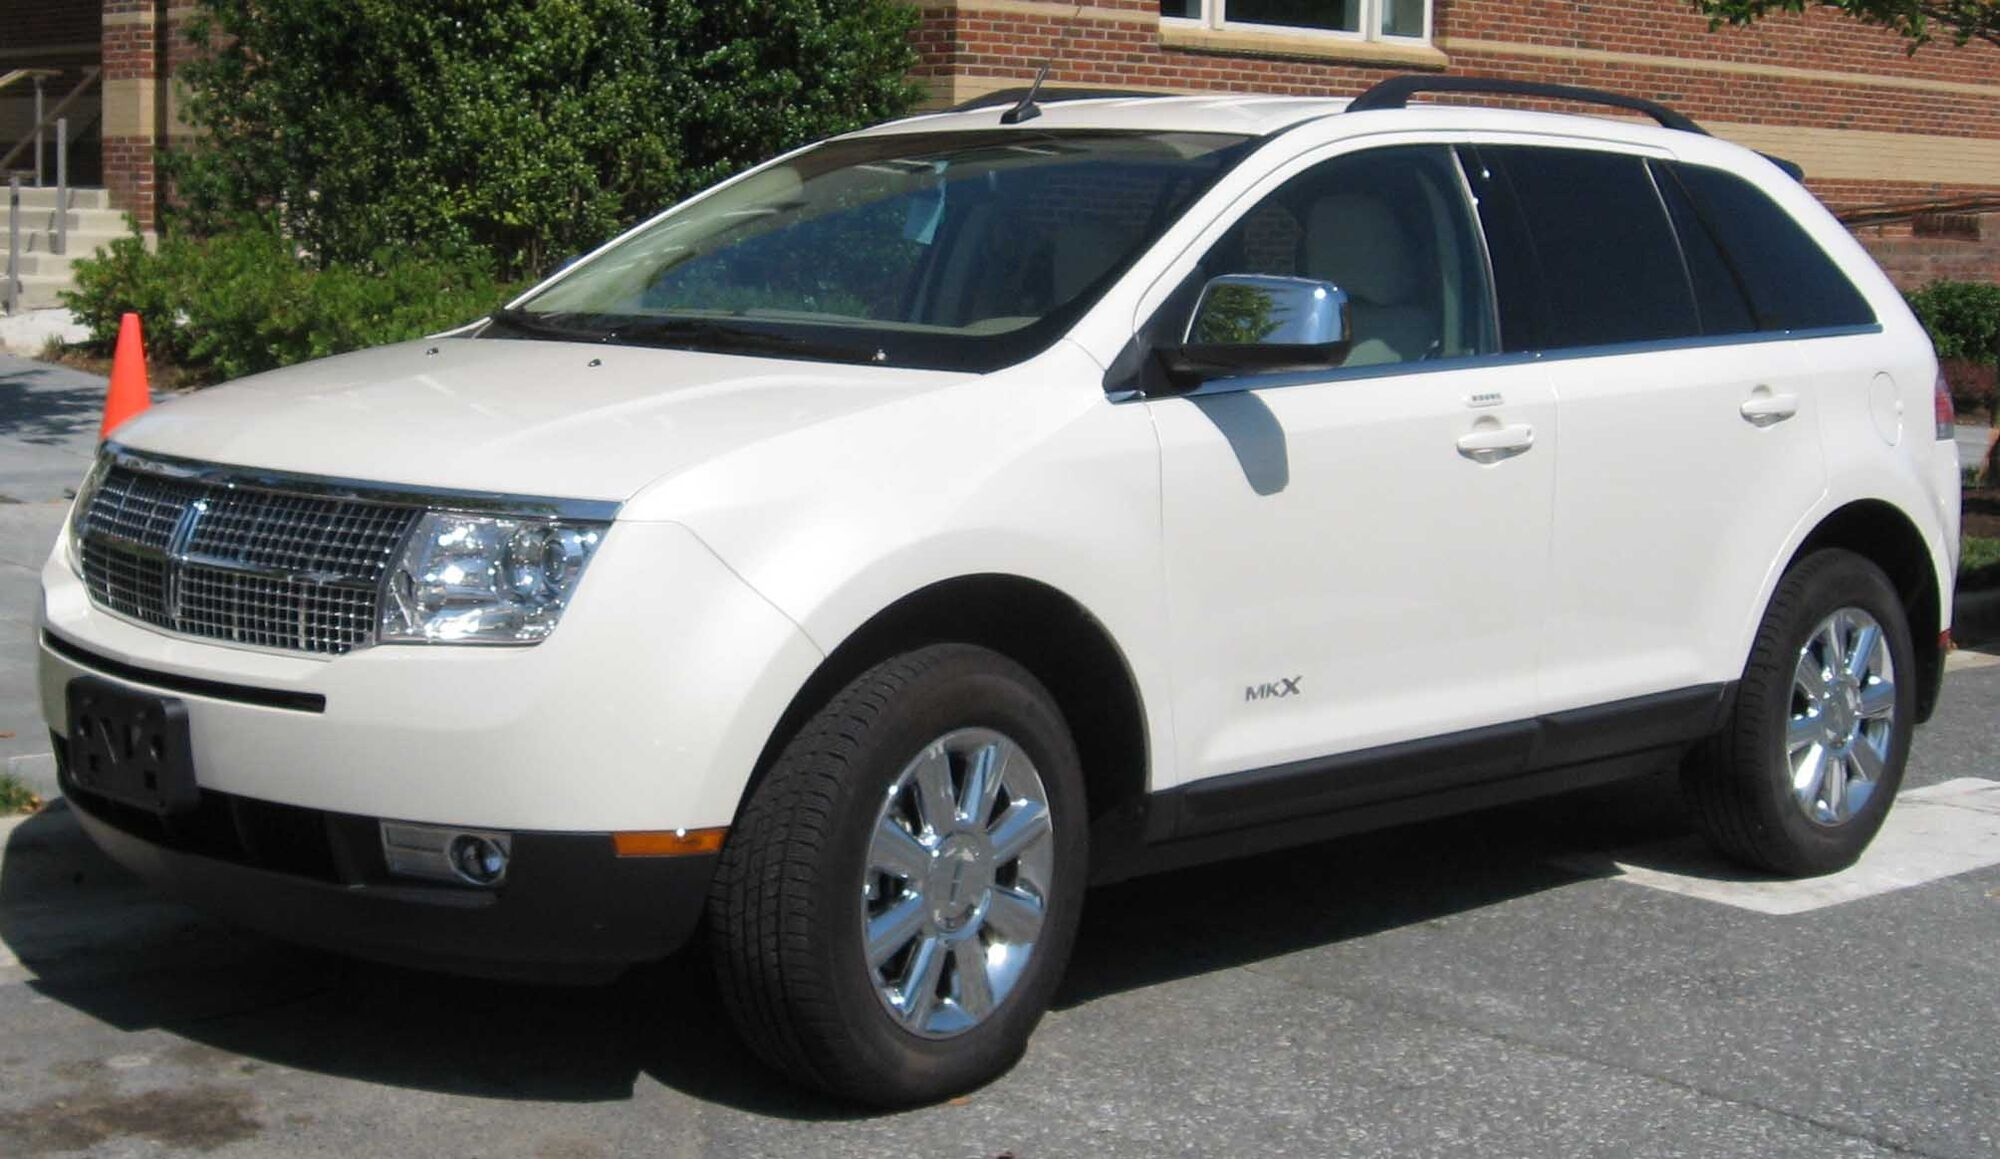 Lincoln Mkx Tractor Construction Plant Wiki Fandom Ed By Wikia